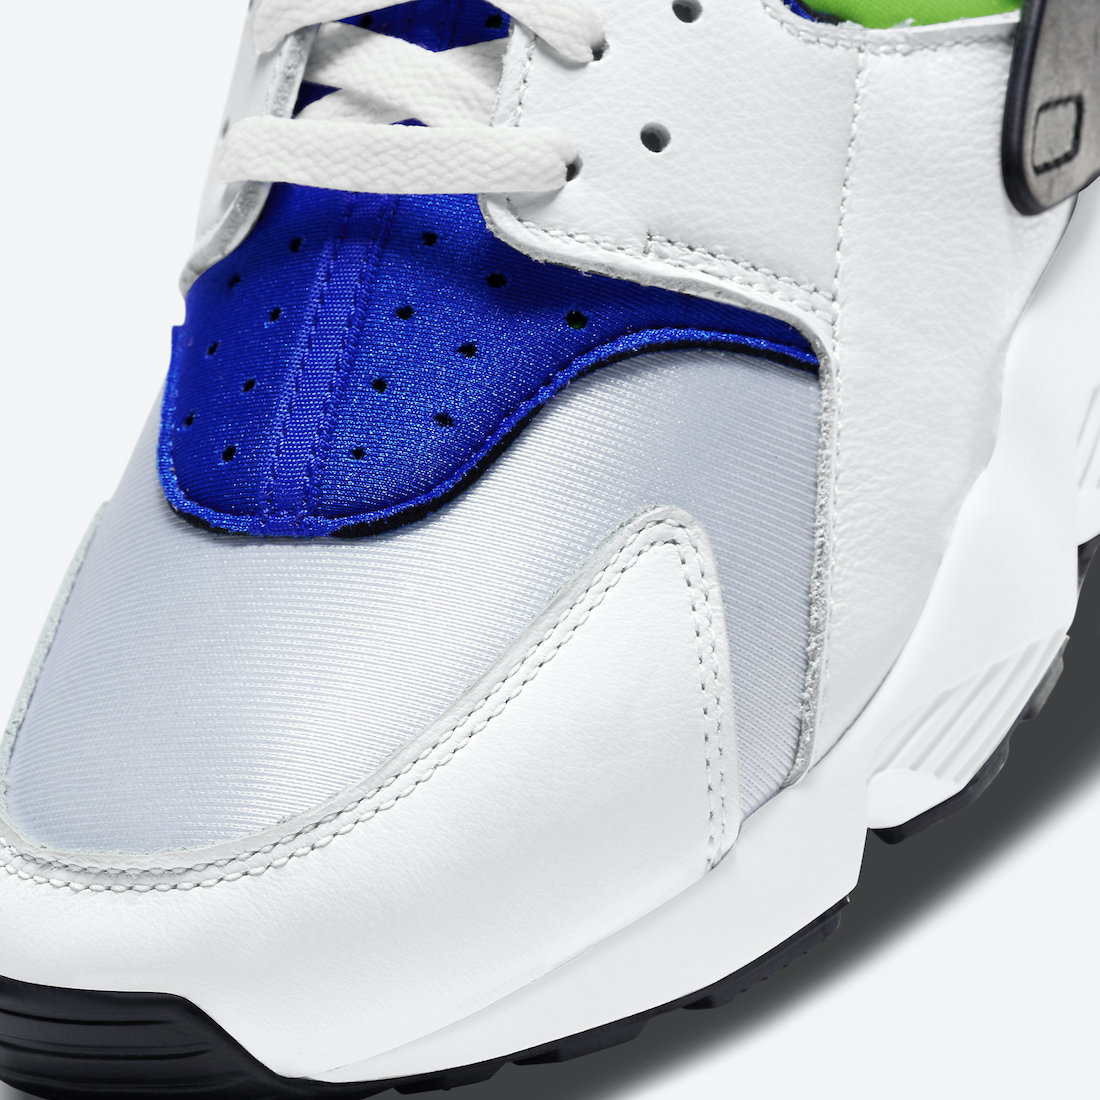 Nike-Air-Huarache-Scream-Green-DD1068-100-2021-Release-Date-6